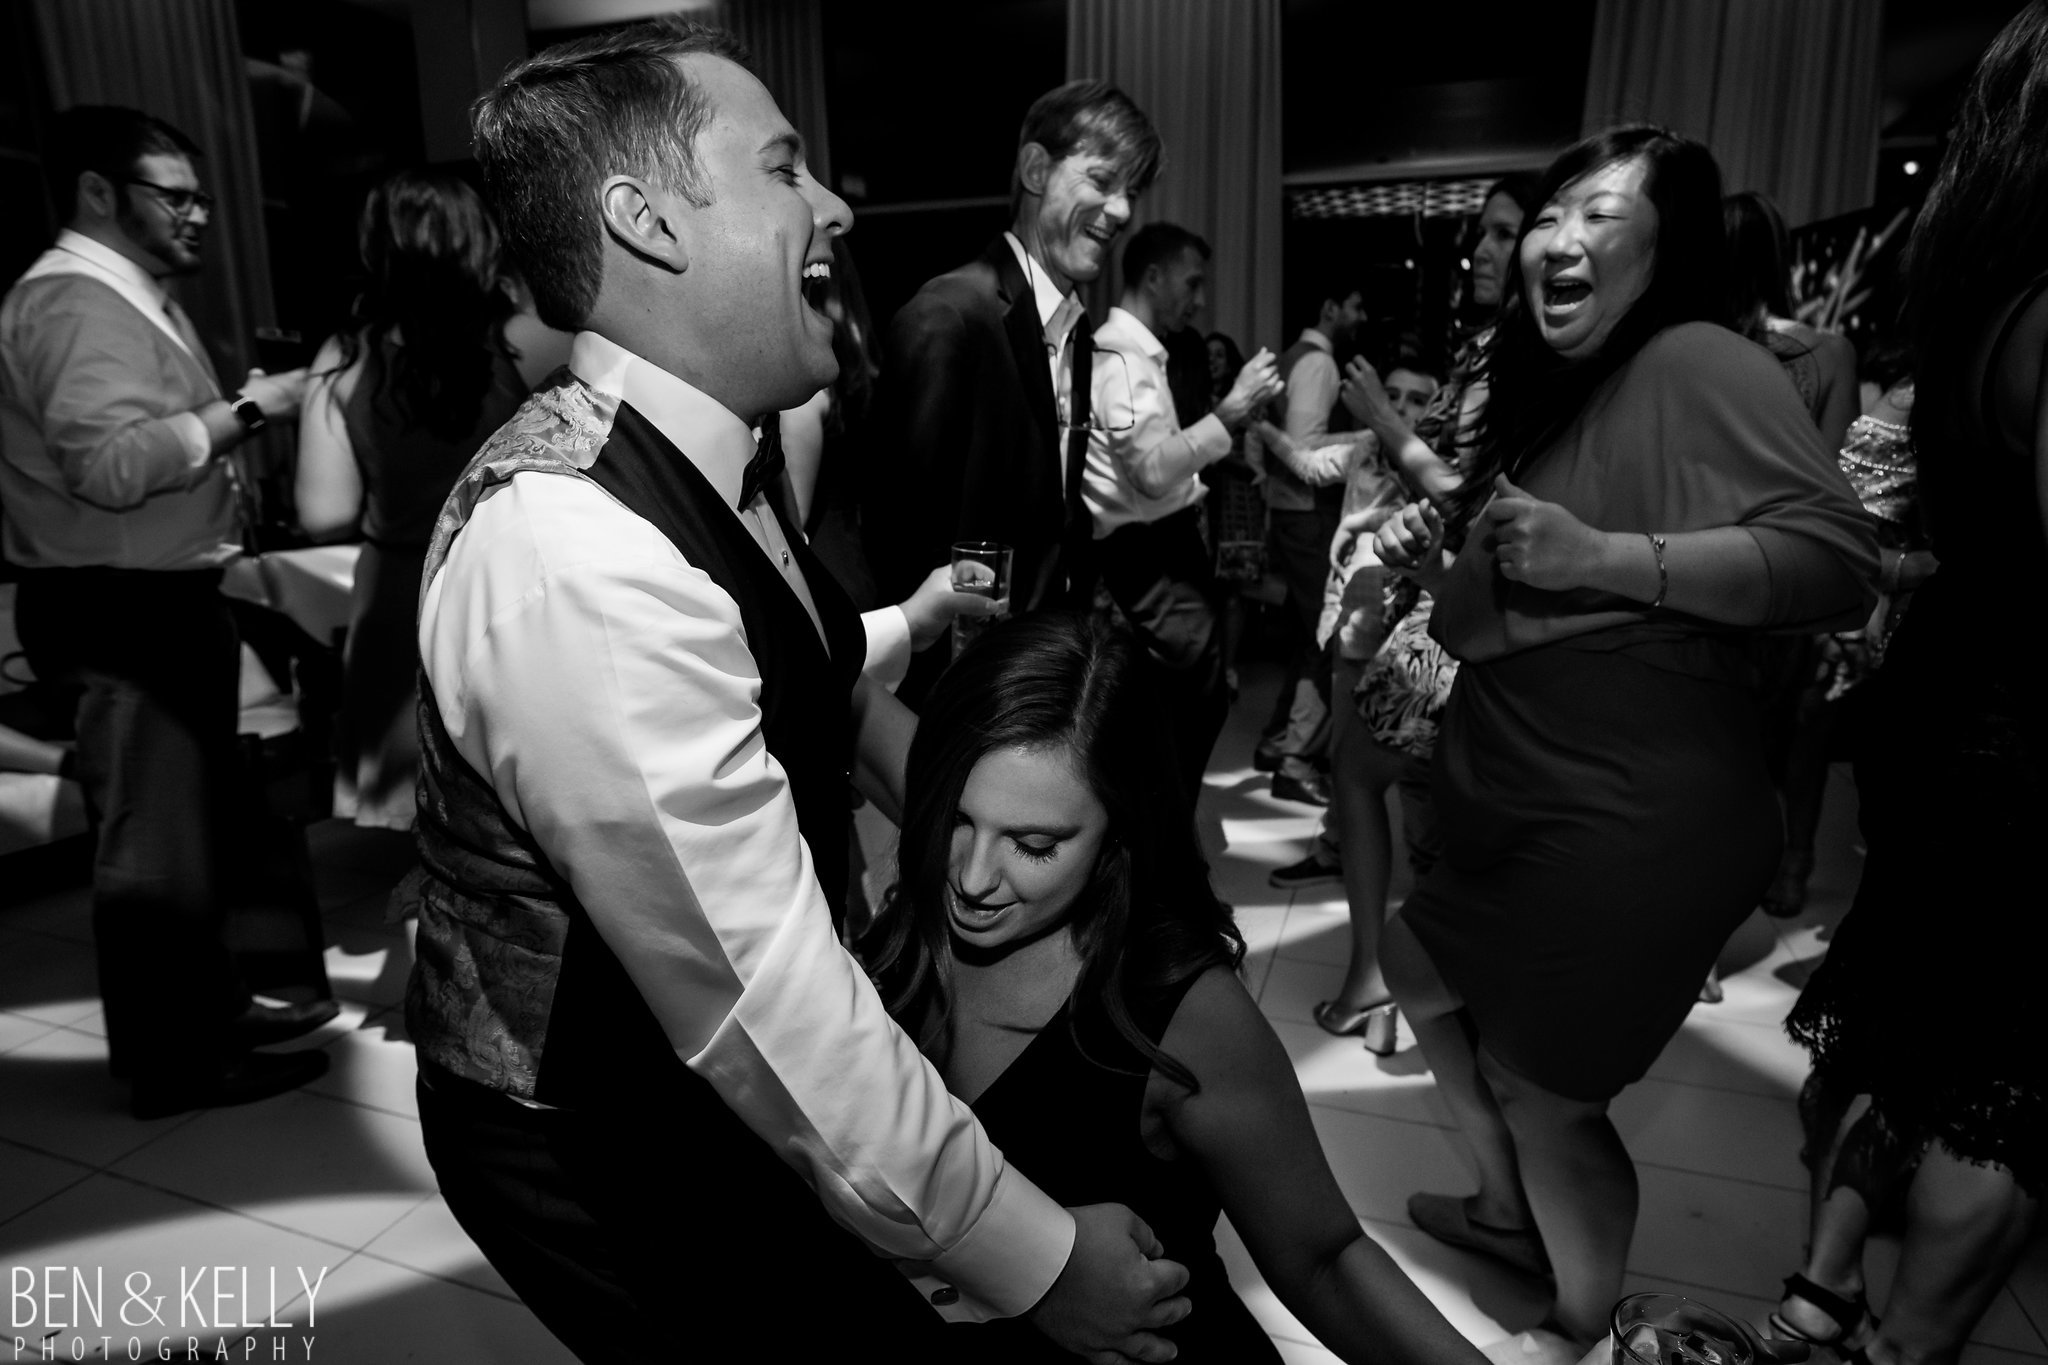 40 wedding after party wedding dance party groom dancing groom laughing wedding dance club Life Design Events photo by Ben and Kelly Photography.jpg